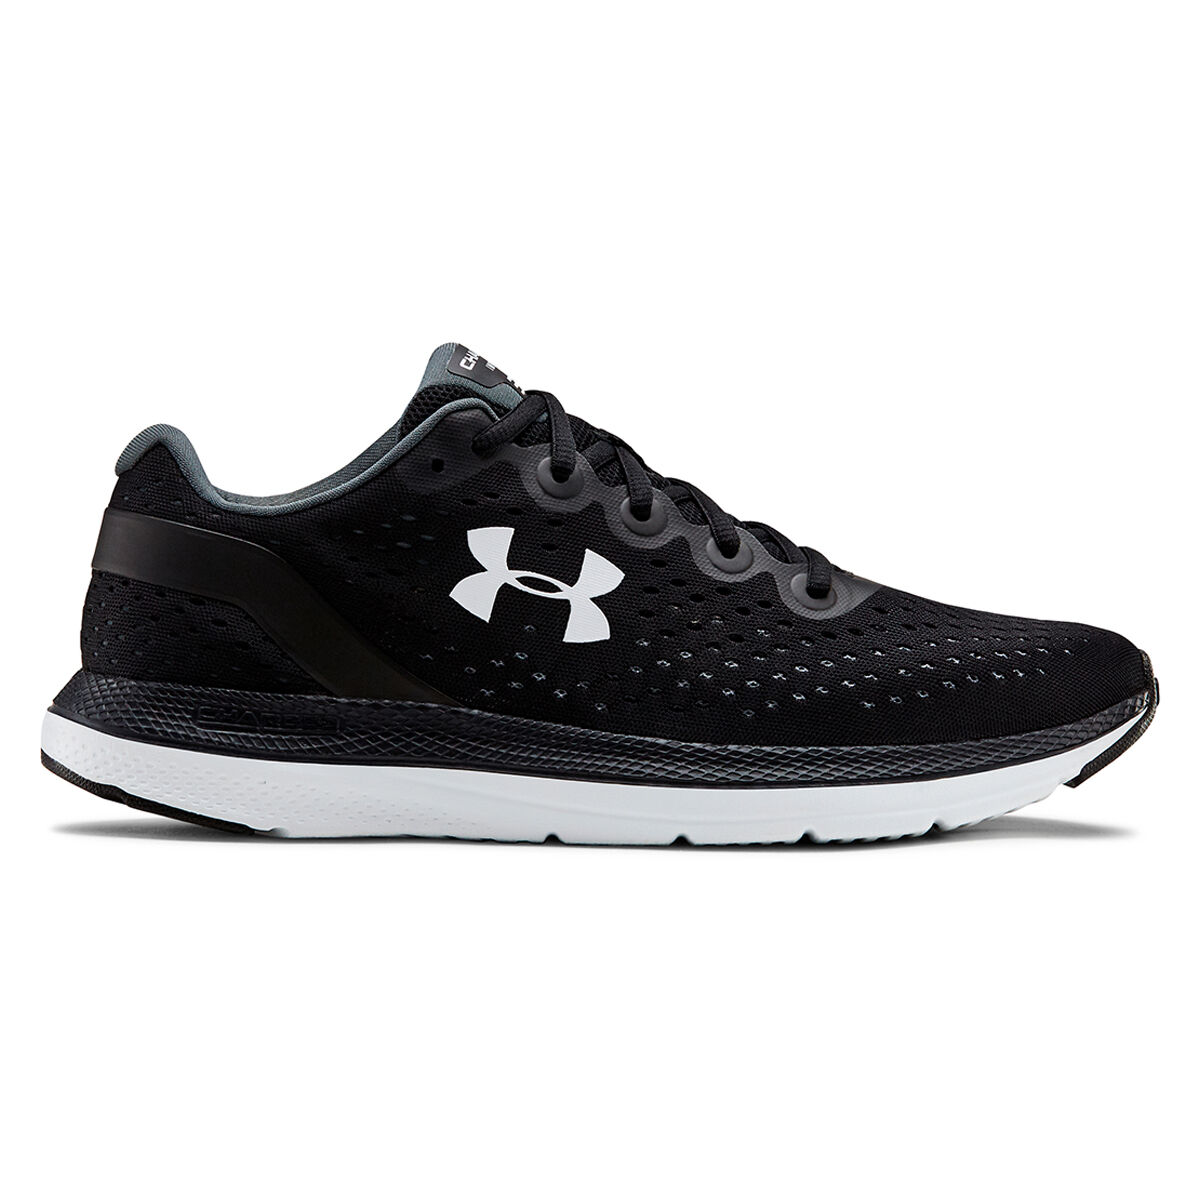 Under Armour Charged Impulse Mens Running Shoes